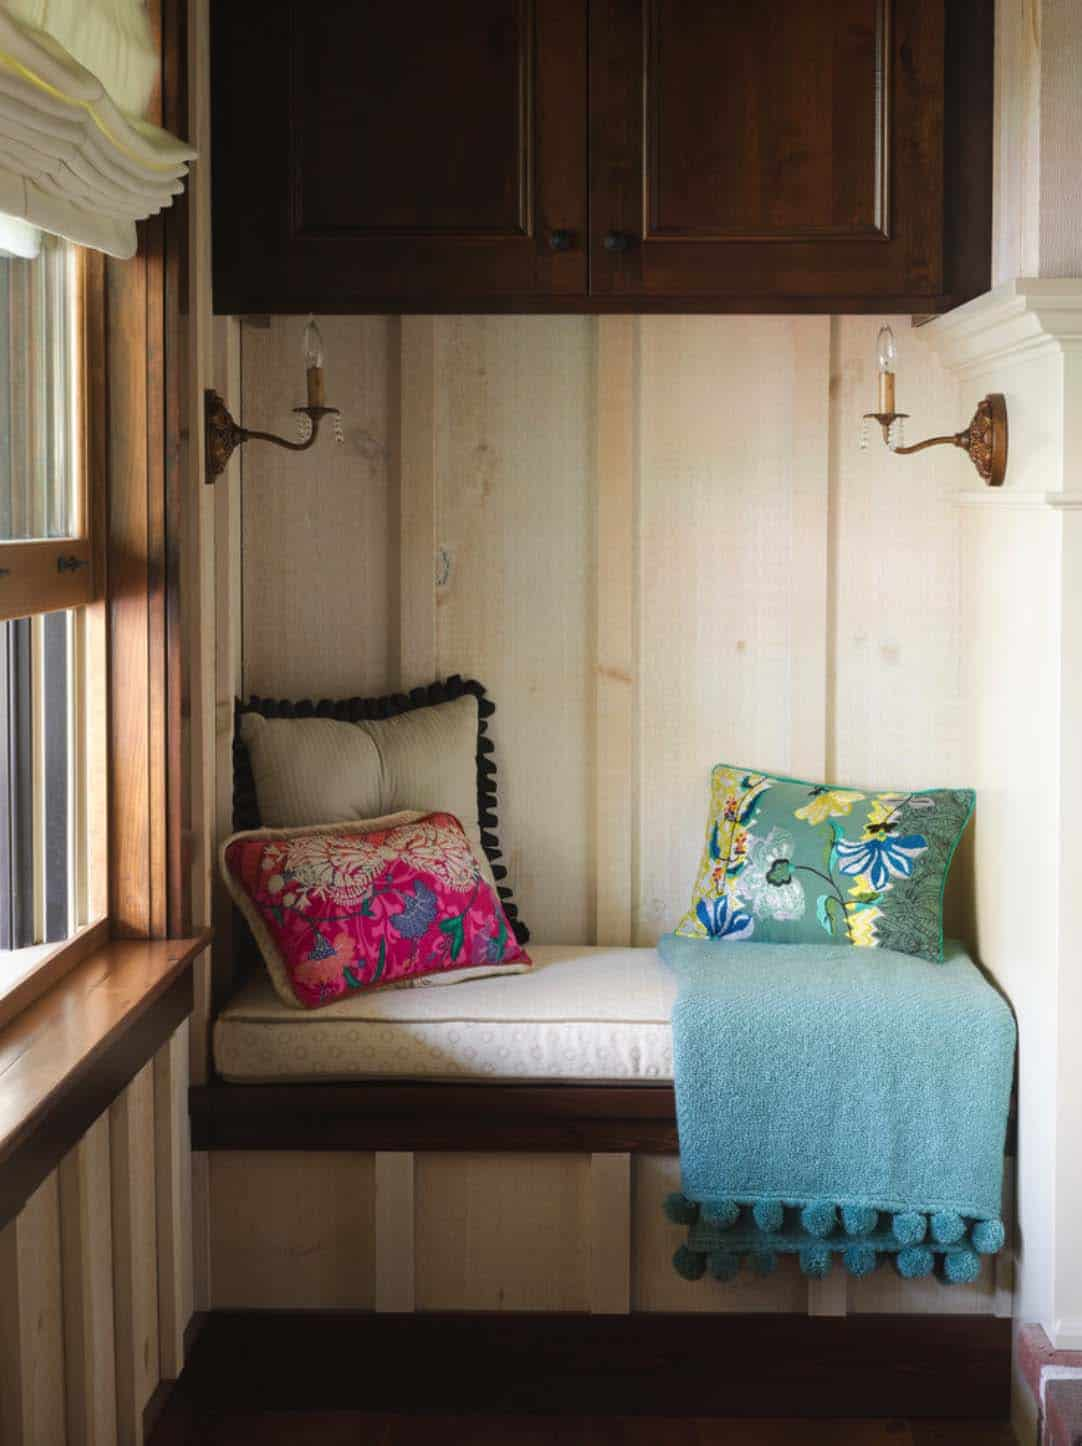 Cozy Reading Nooks For Lounging-05-1 Kindesign